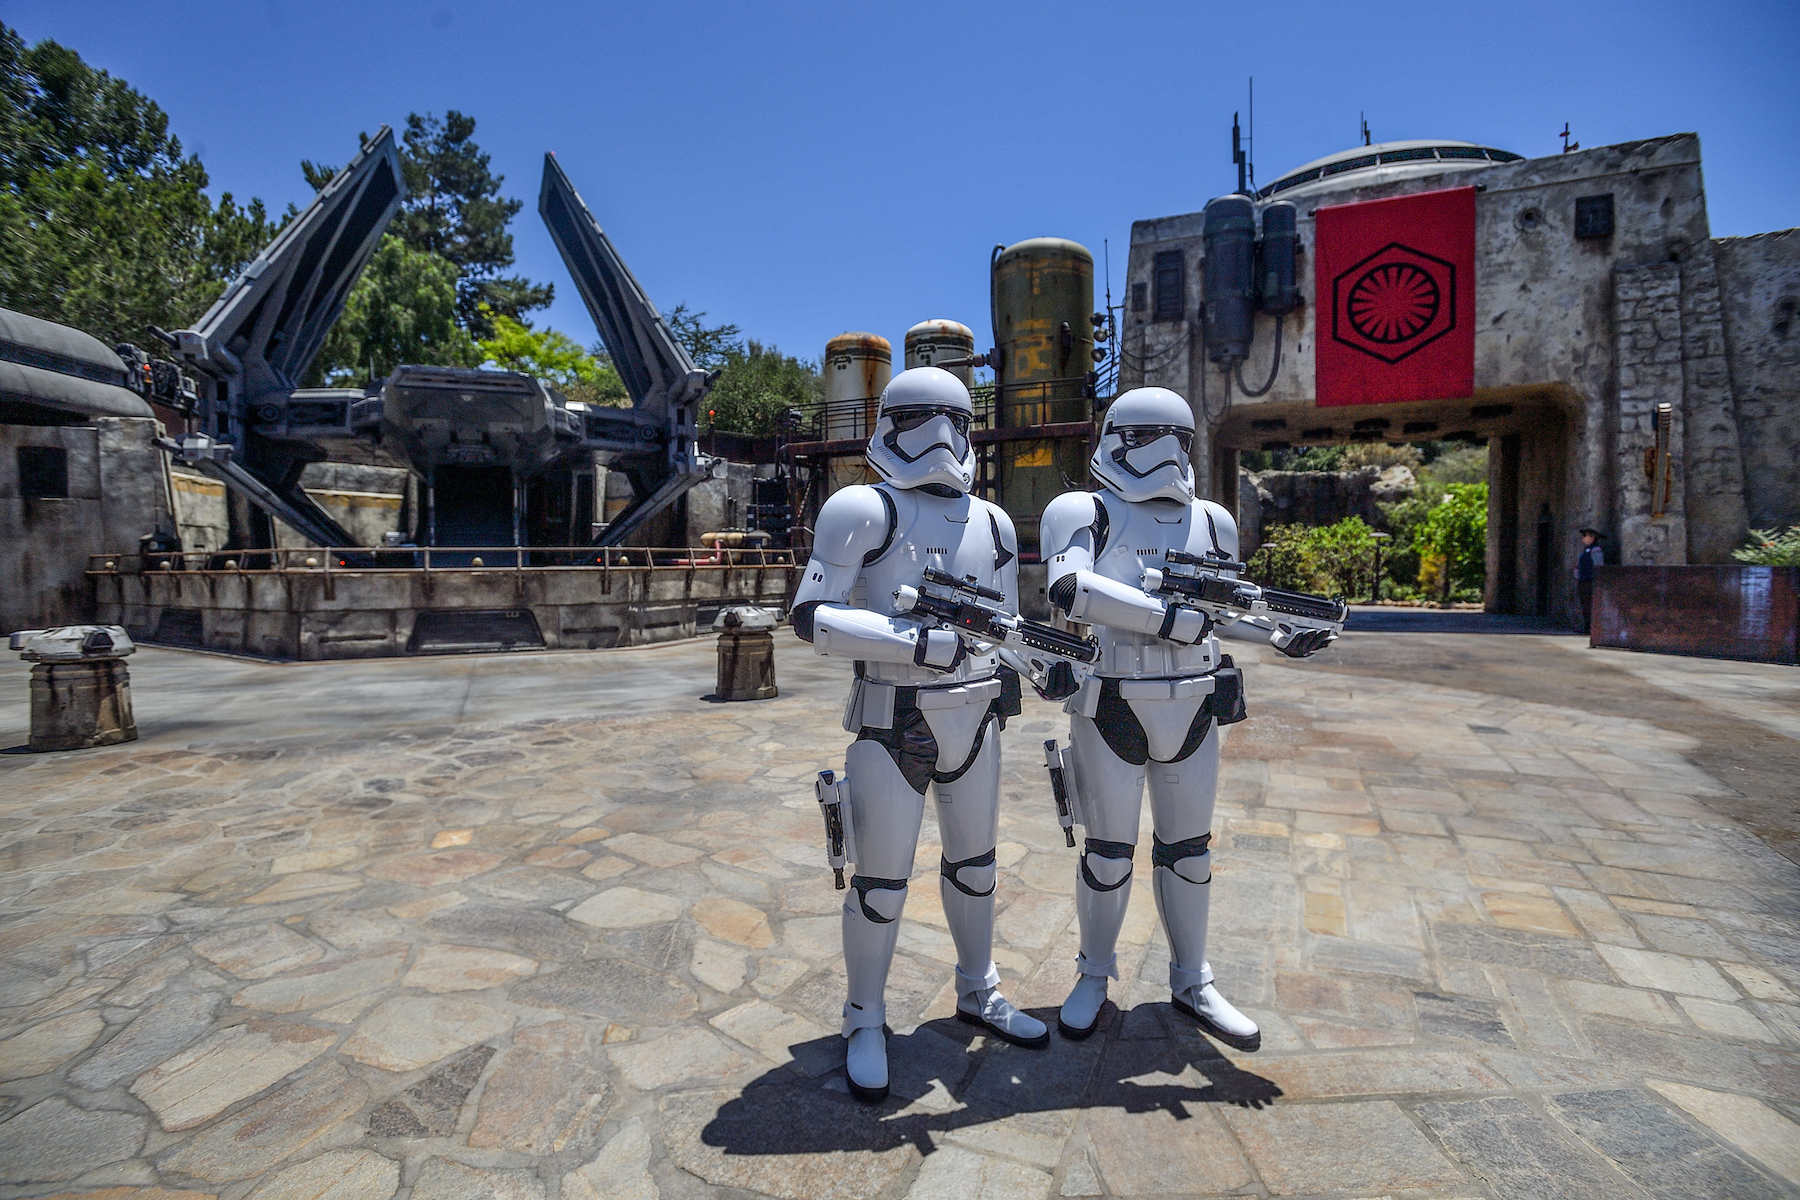 A Parents' Guide to Disney's Star Wars Galaxy's Edge